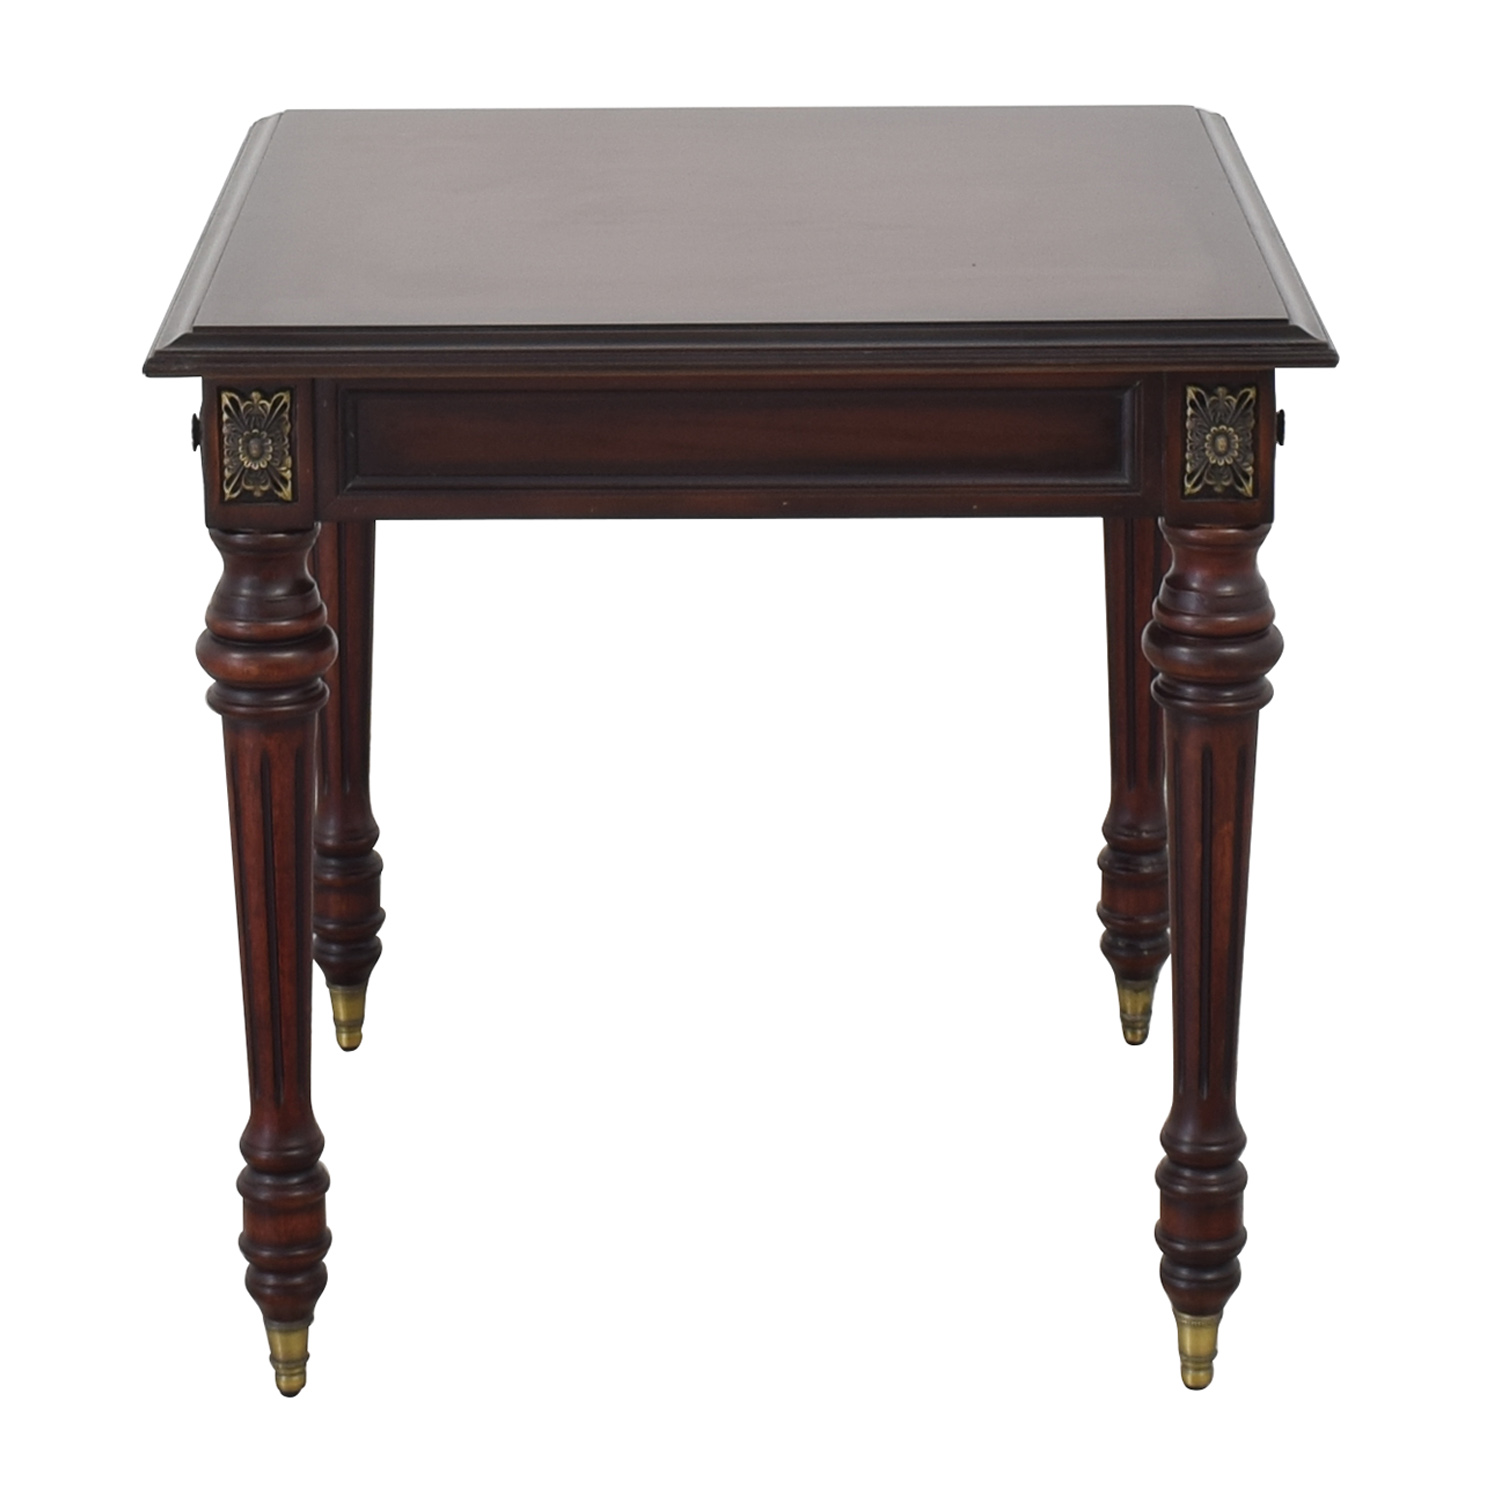 buy One Kings Lane Square End Table One Kings Lane